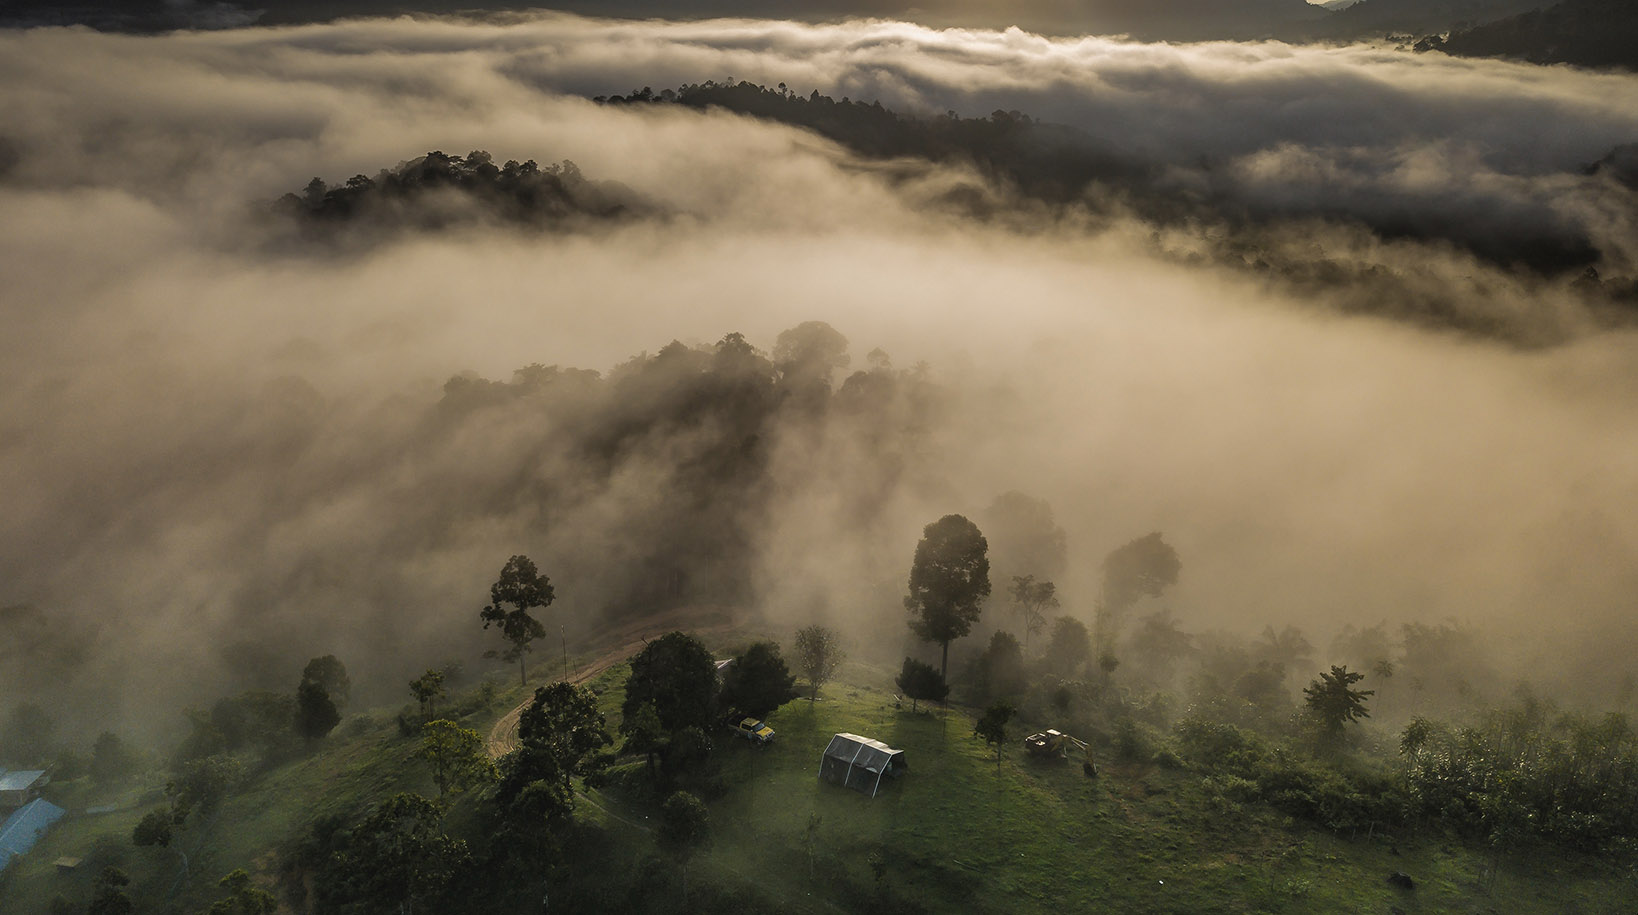 Why We've Protected 48 Football Pitches Of Rainforest